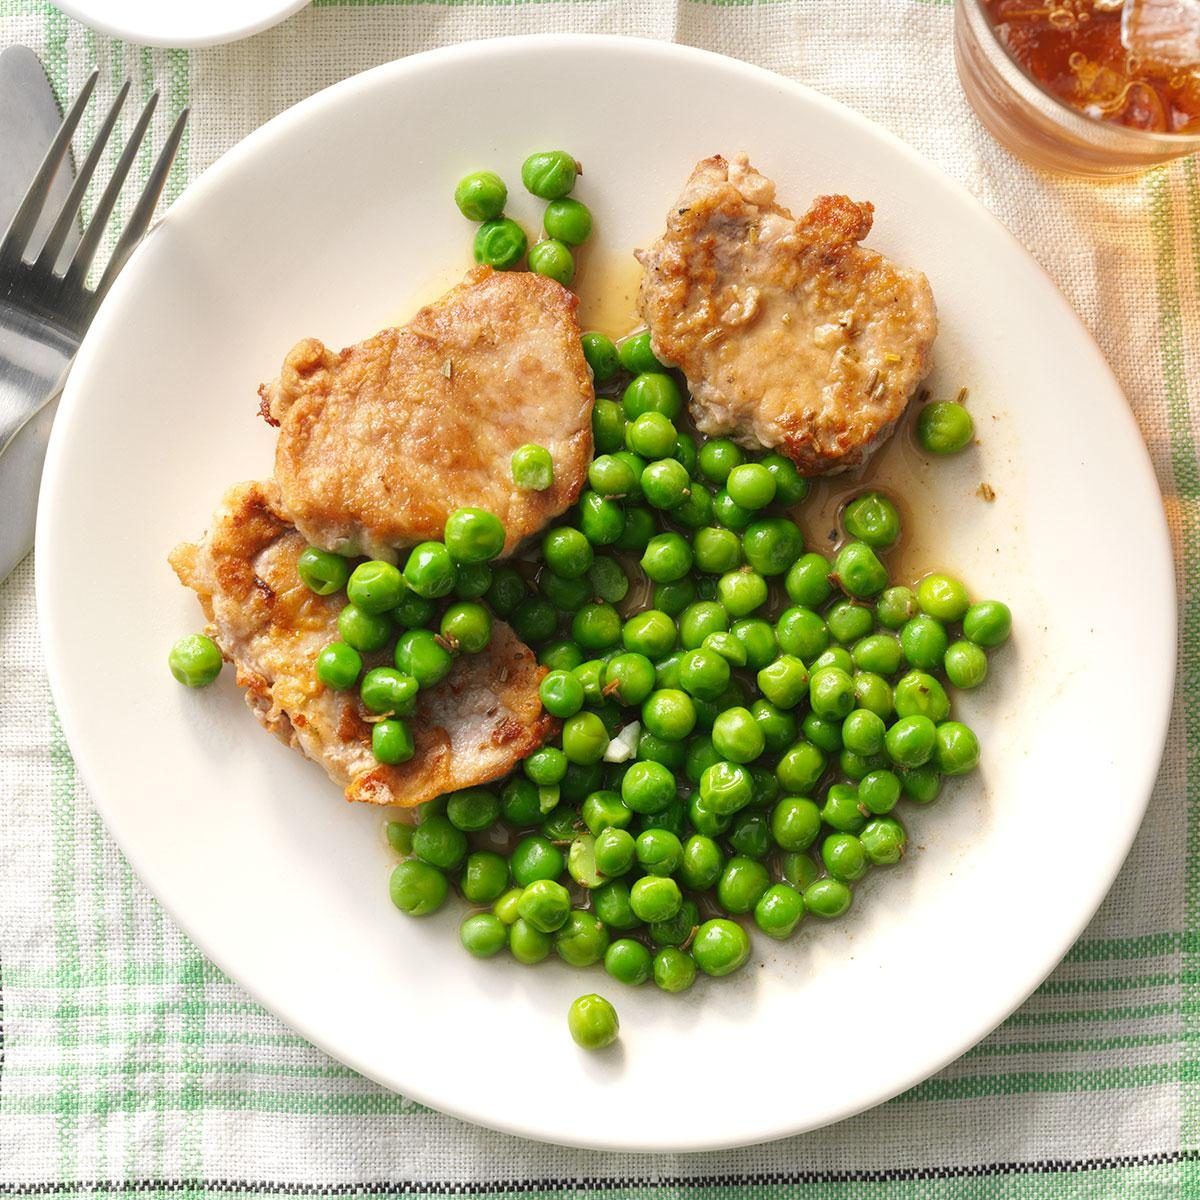 Day 10: Rosemary Pork Medallions with Peas